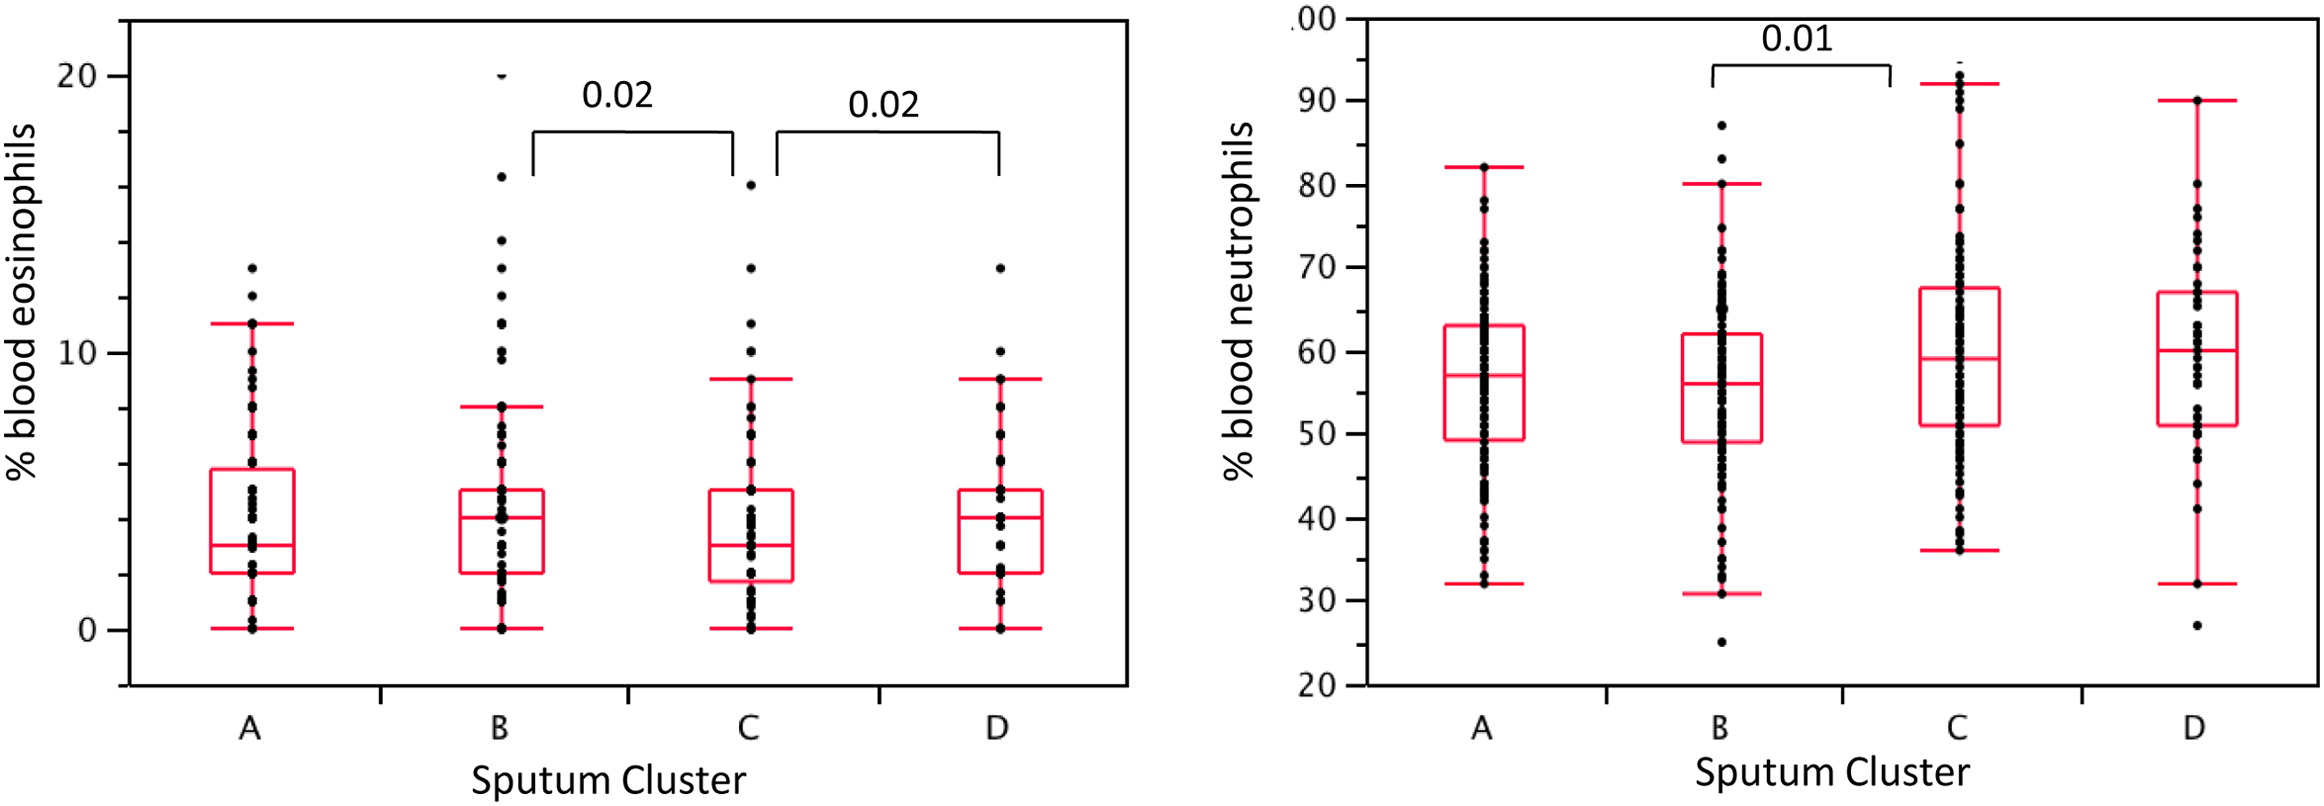 Supplemental Materials For Sputum Neutrophil Counts Are Associated With More Severe Asthma